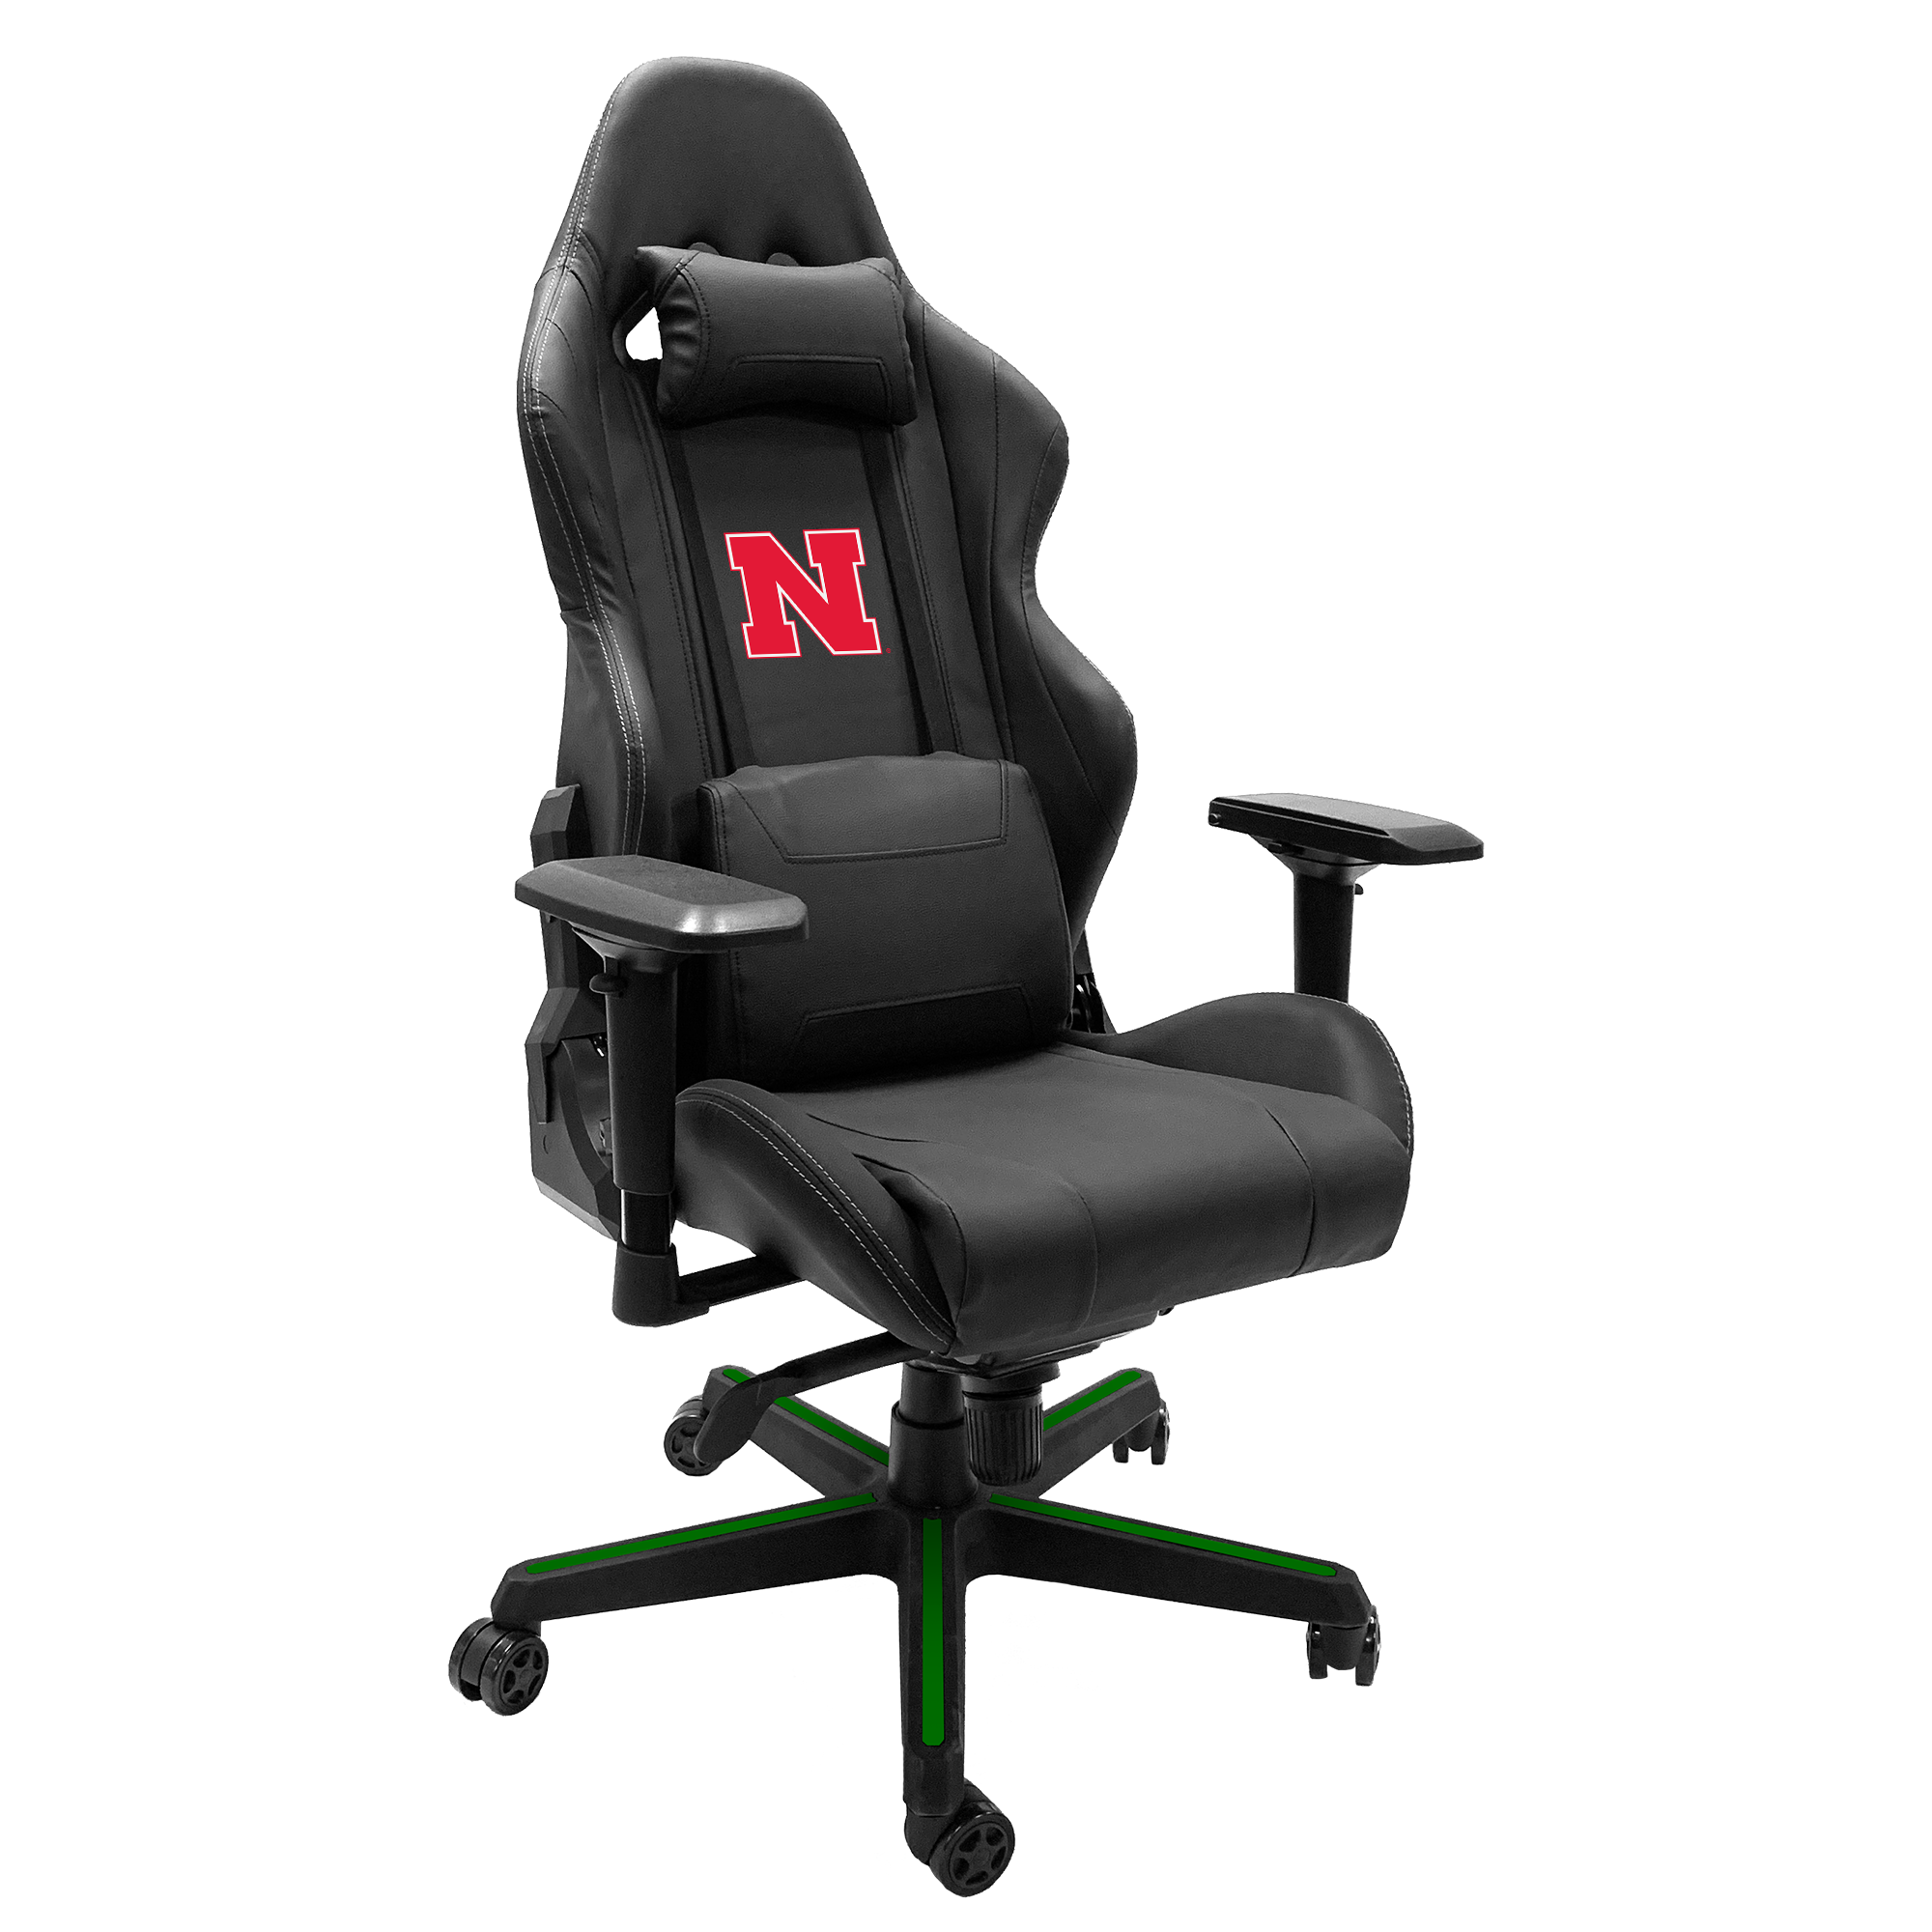 Xpression Gaming Chair with Nebraska Cornhuskers Primary